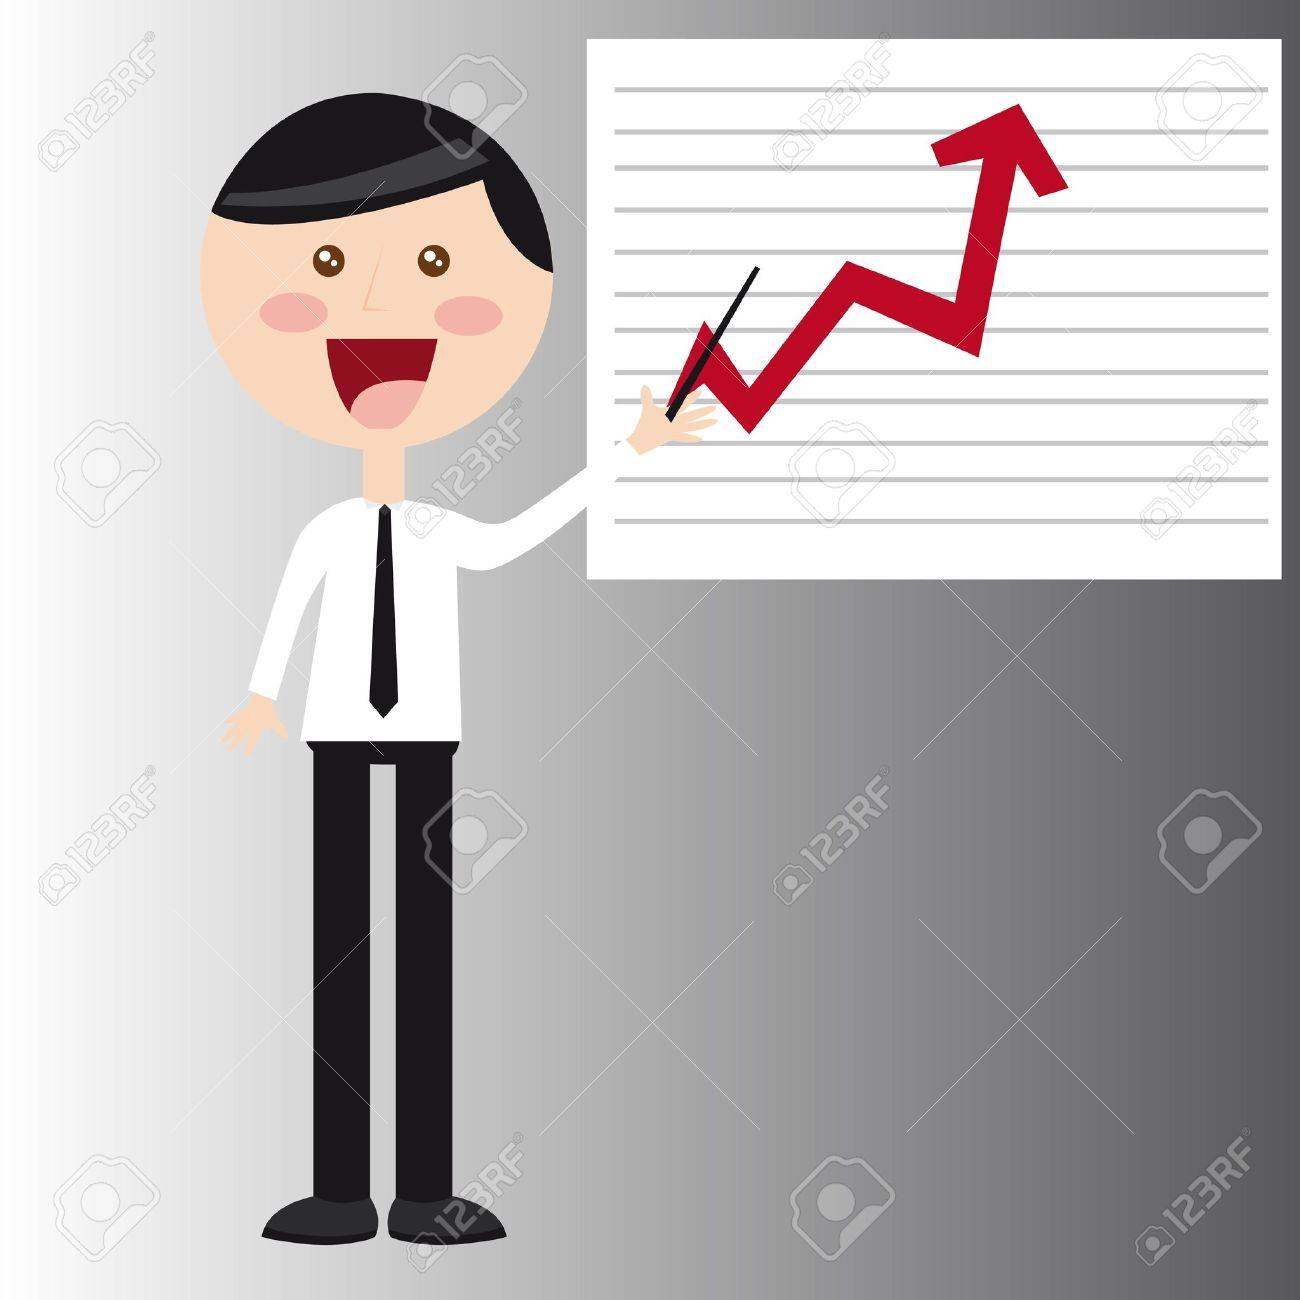 businessman with business graph vector illustration Stock Vector - 11516562